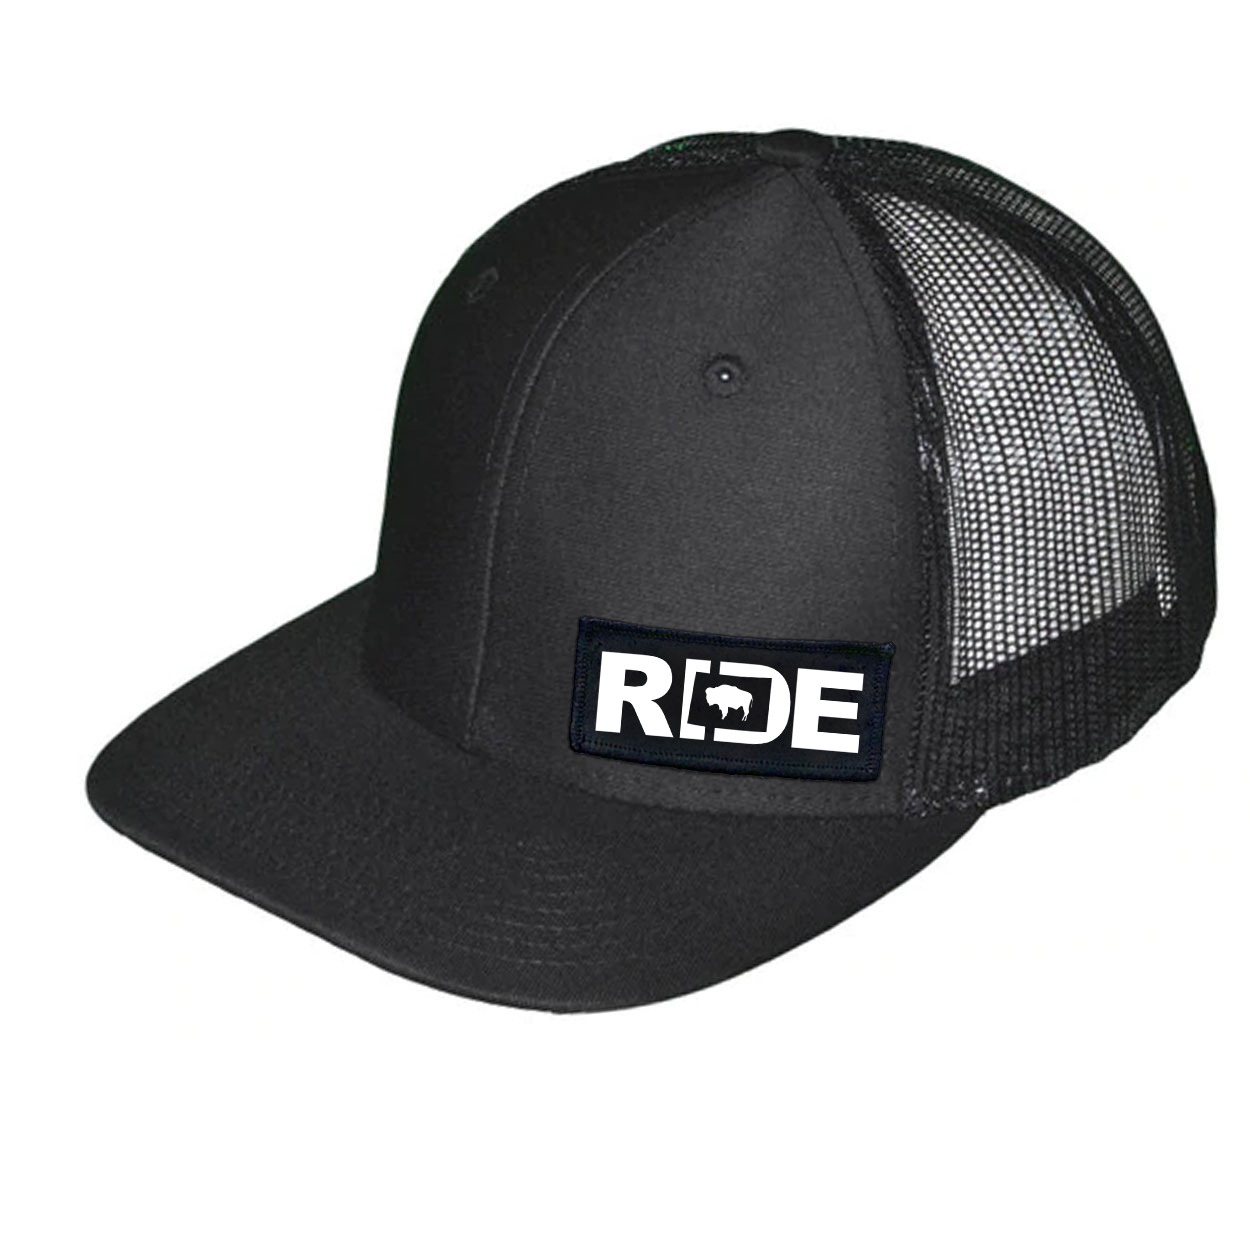 Ride Wyoming Night Out Woven Patch Snapback Trucker Hat Black (White Logo)